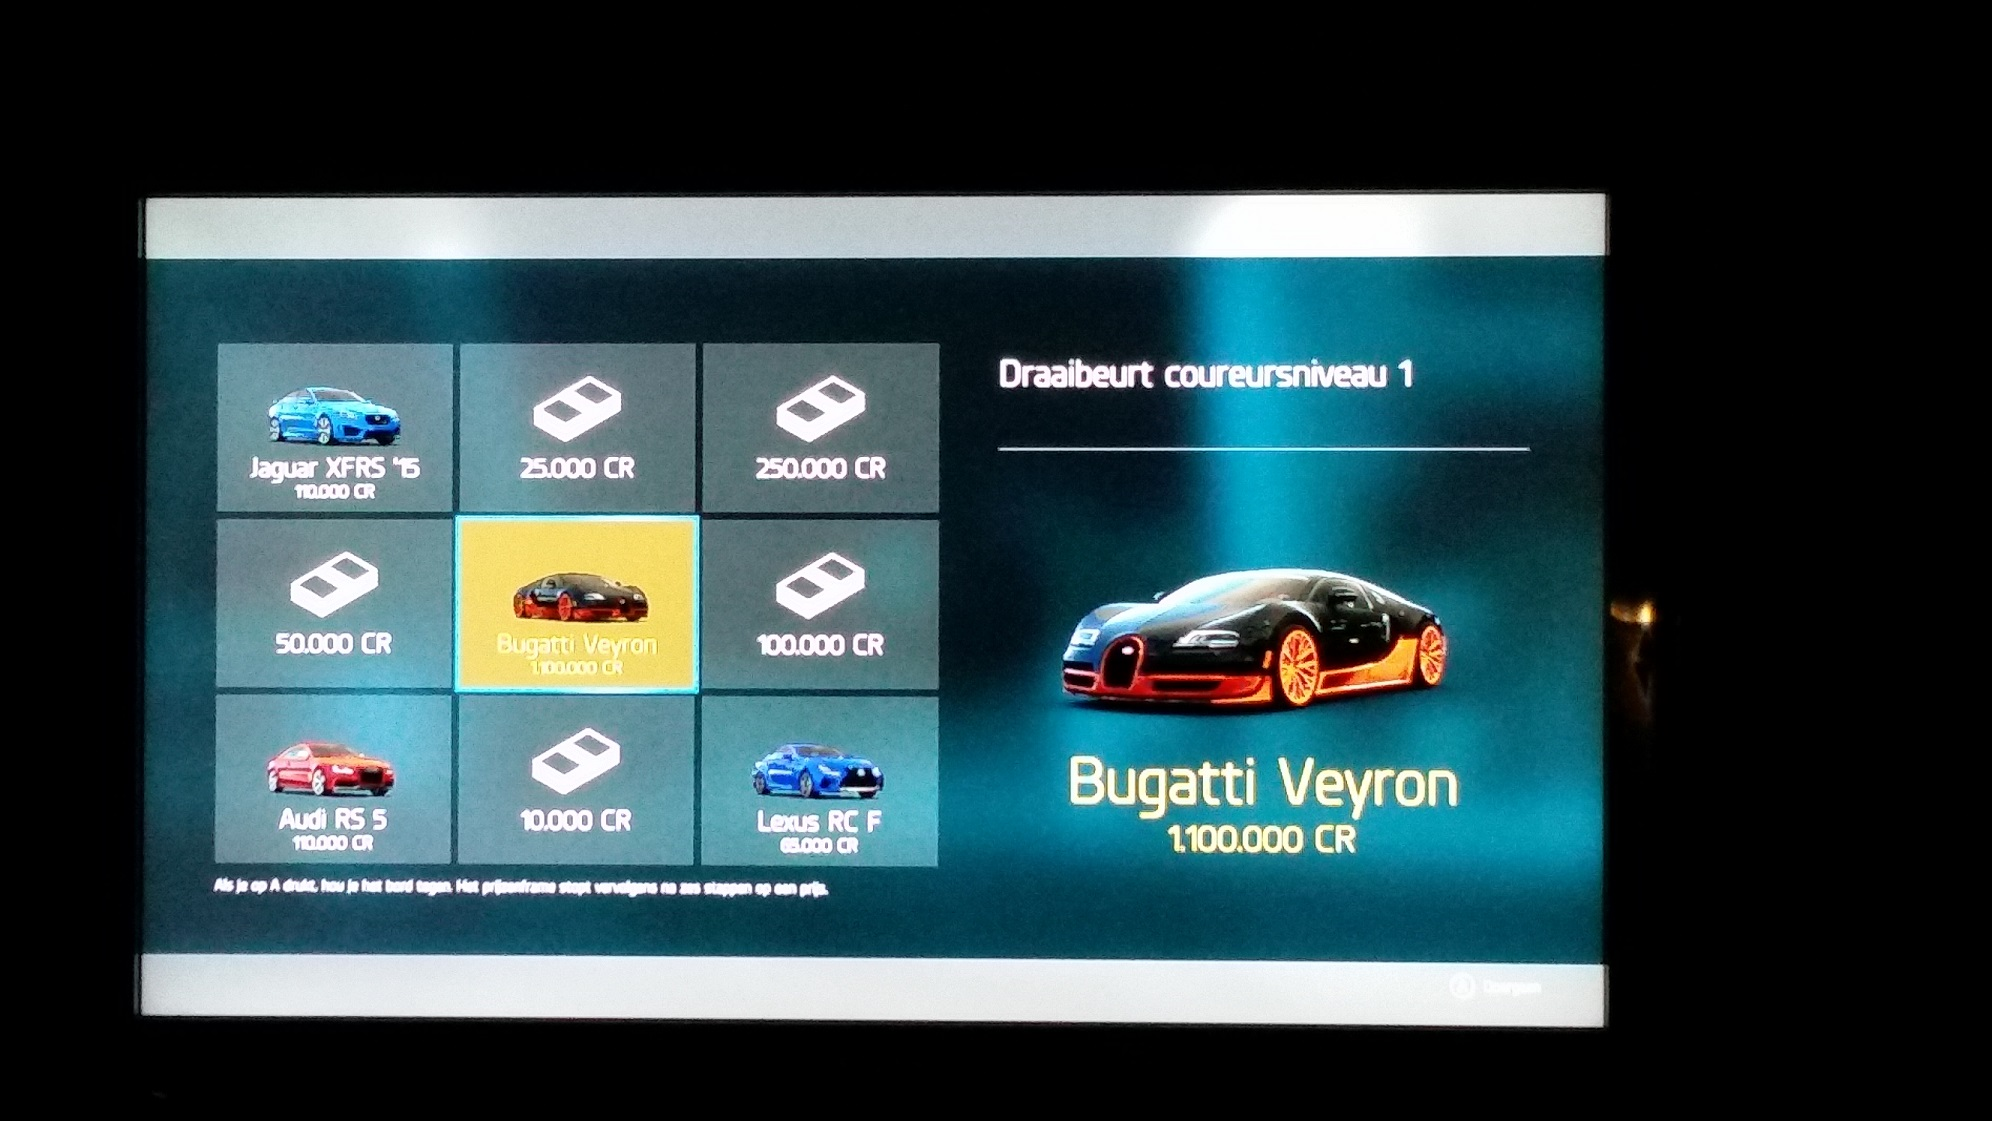 Just Bougth Forza Motorsport 6 Reached Lvl 1 And My First Wheelspin Gave Me A Bugatti Veyron Not Bad For Also Got 7 Other Cars